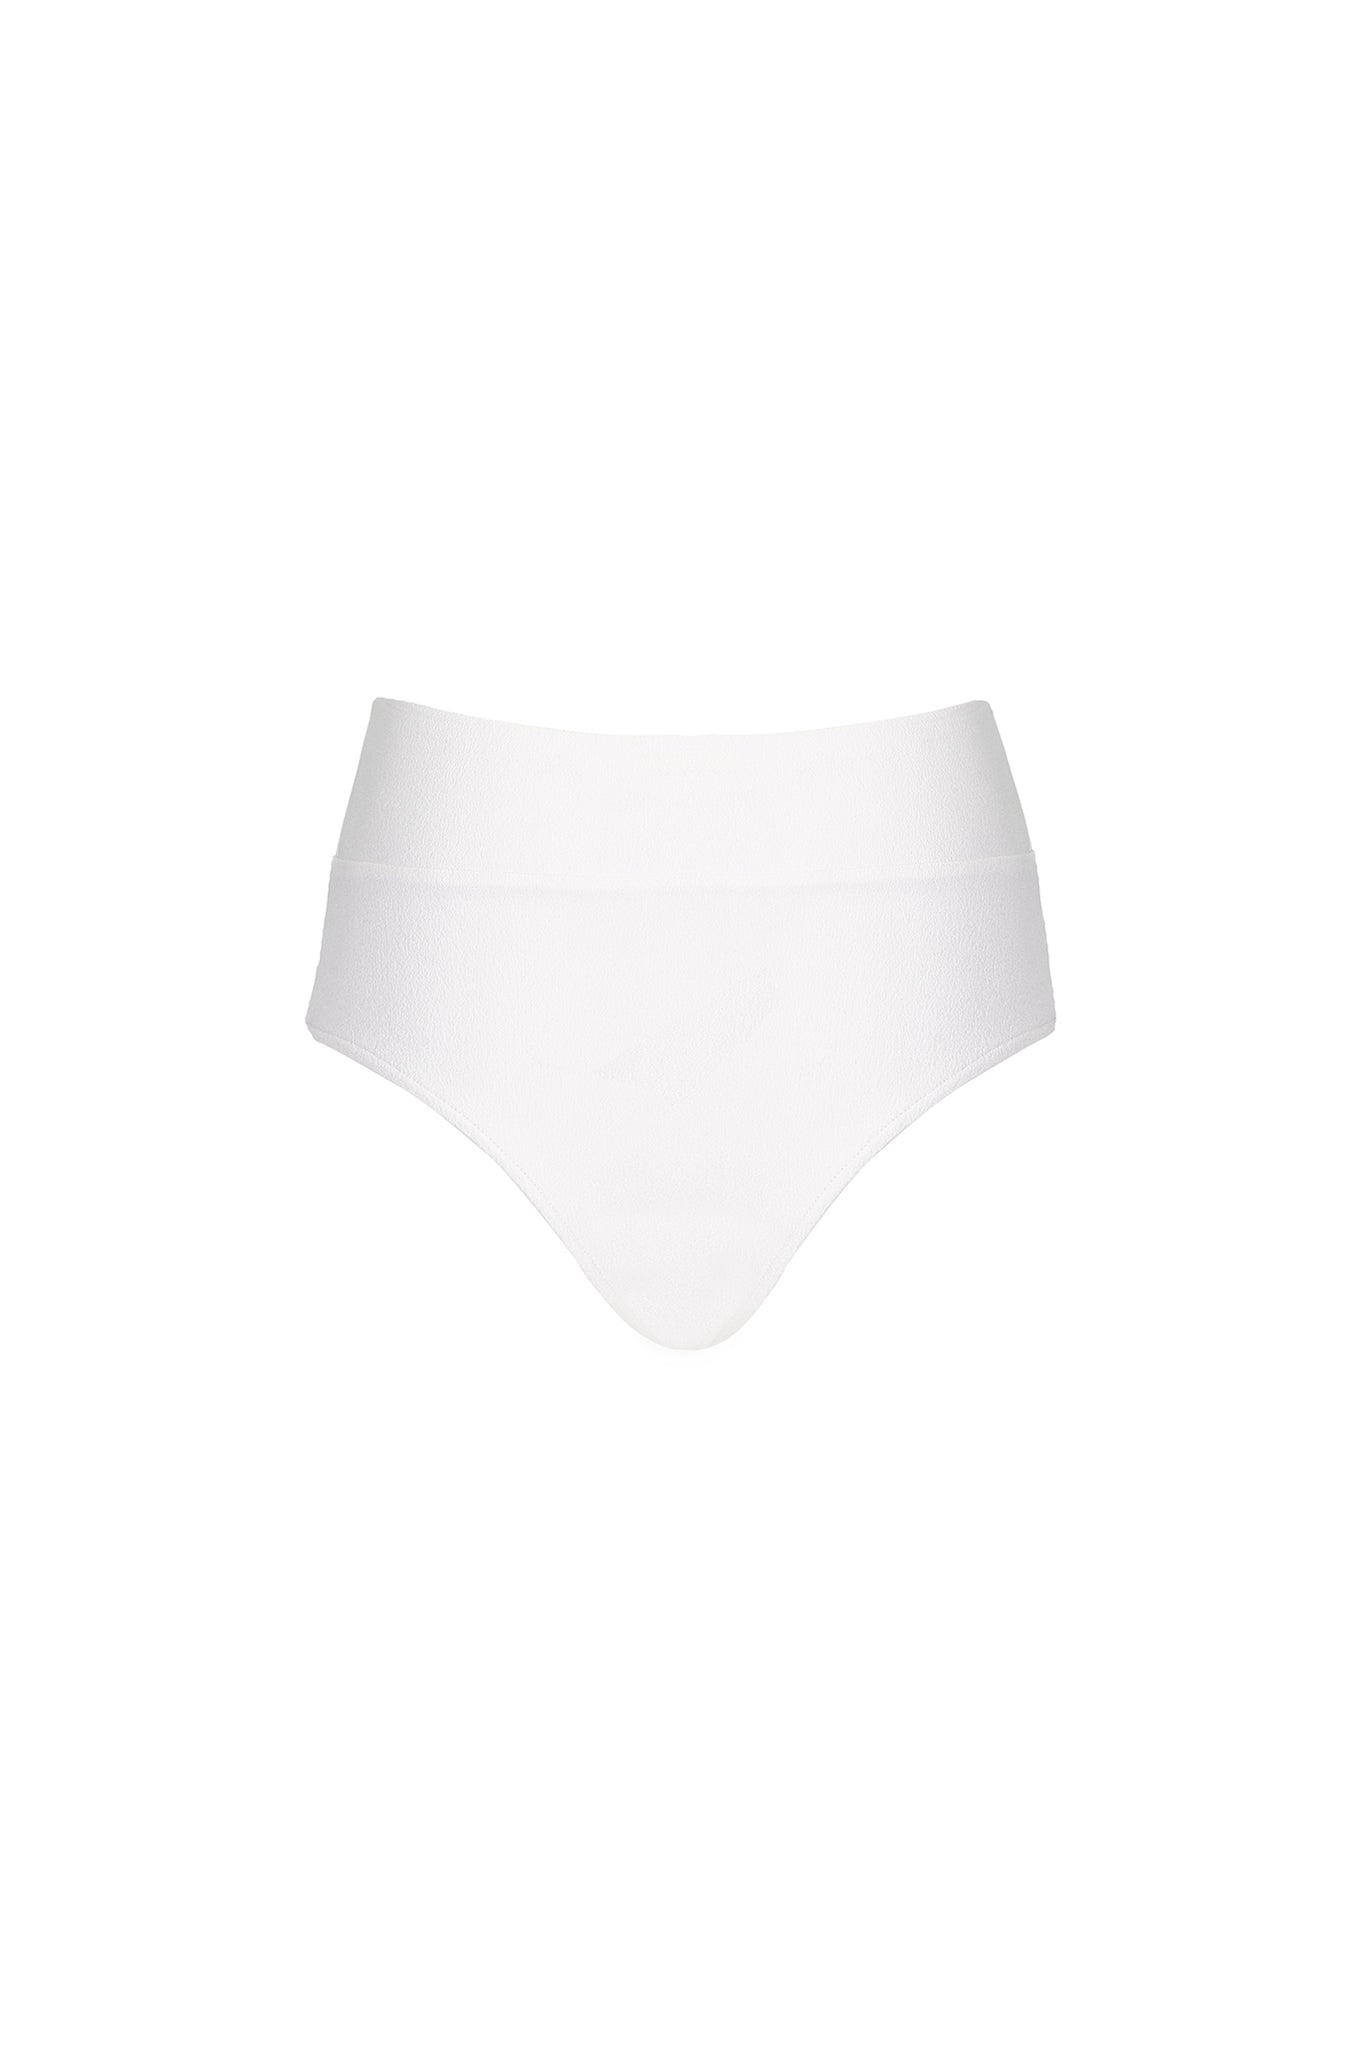 Henley high waist bottom in cream crepe, product shot front